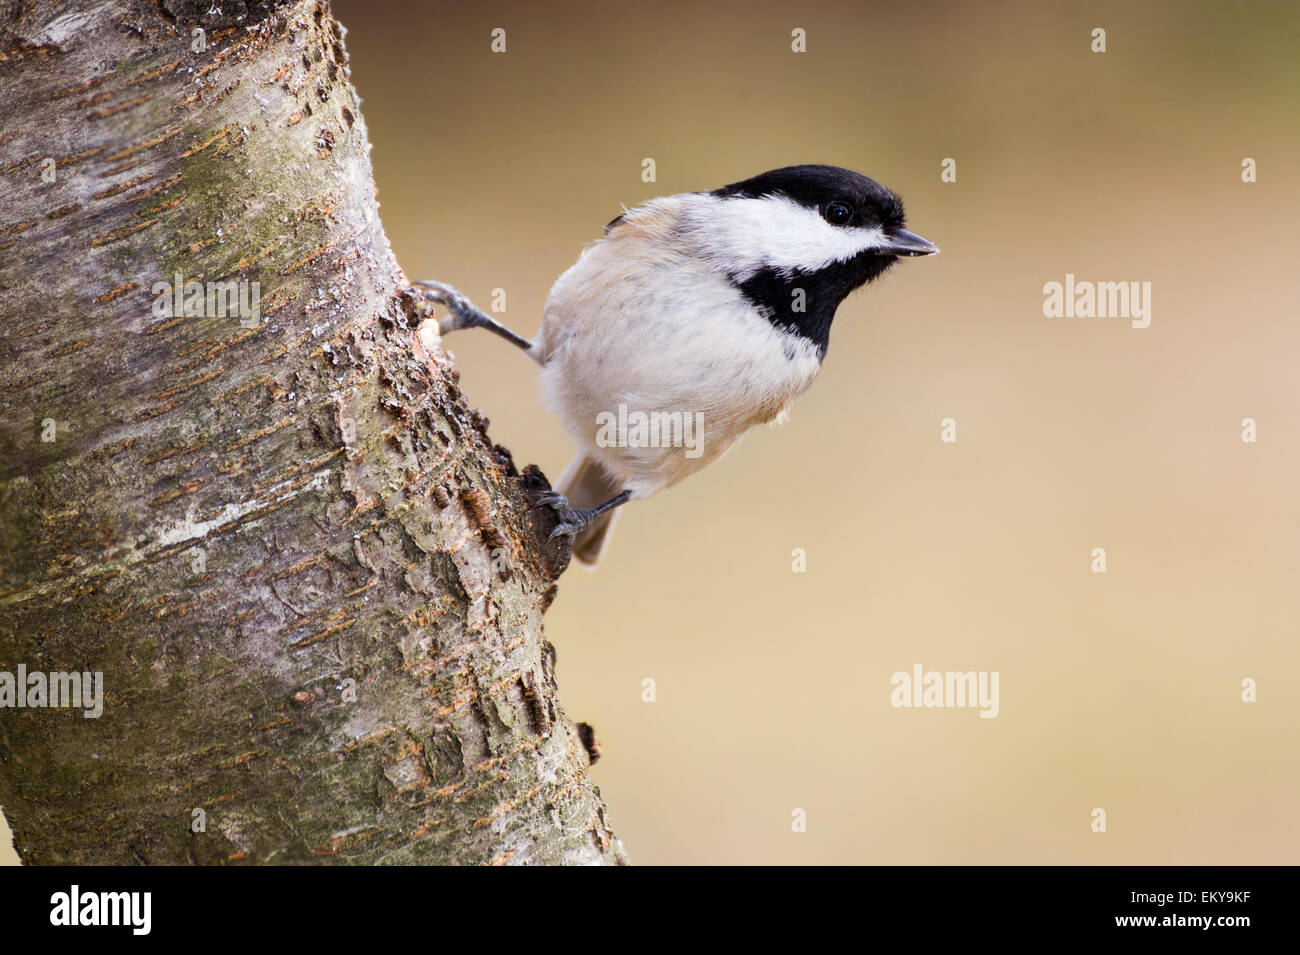 A Carolina chickadee hanging off a mountain ash tree. - Stock Image